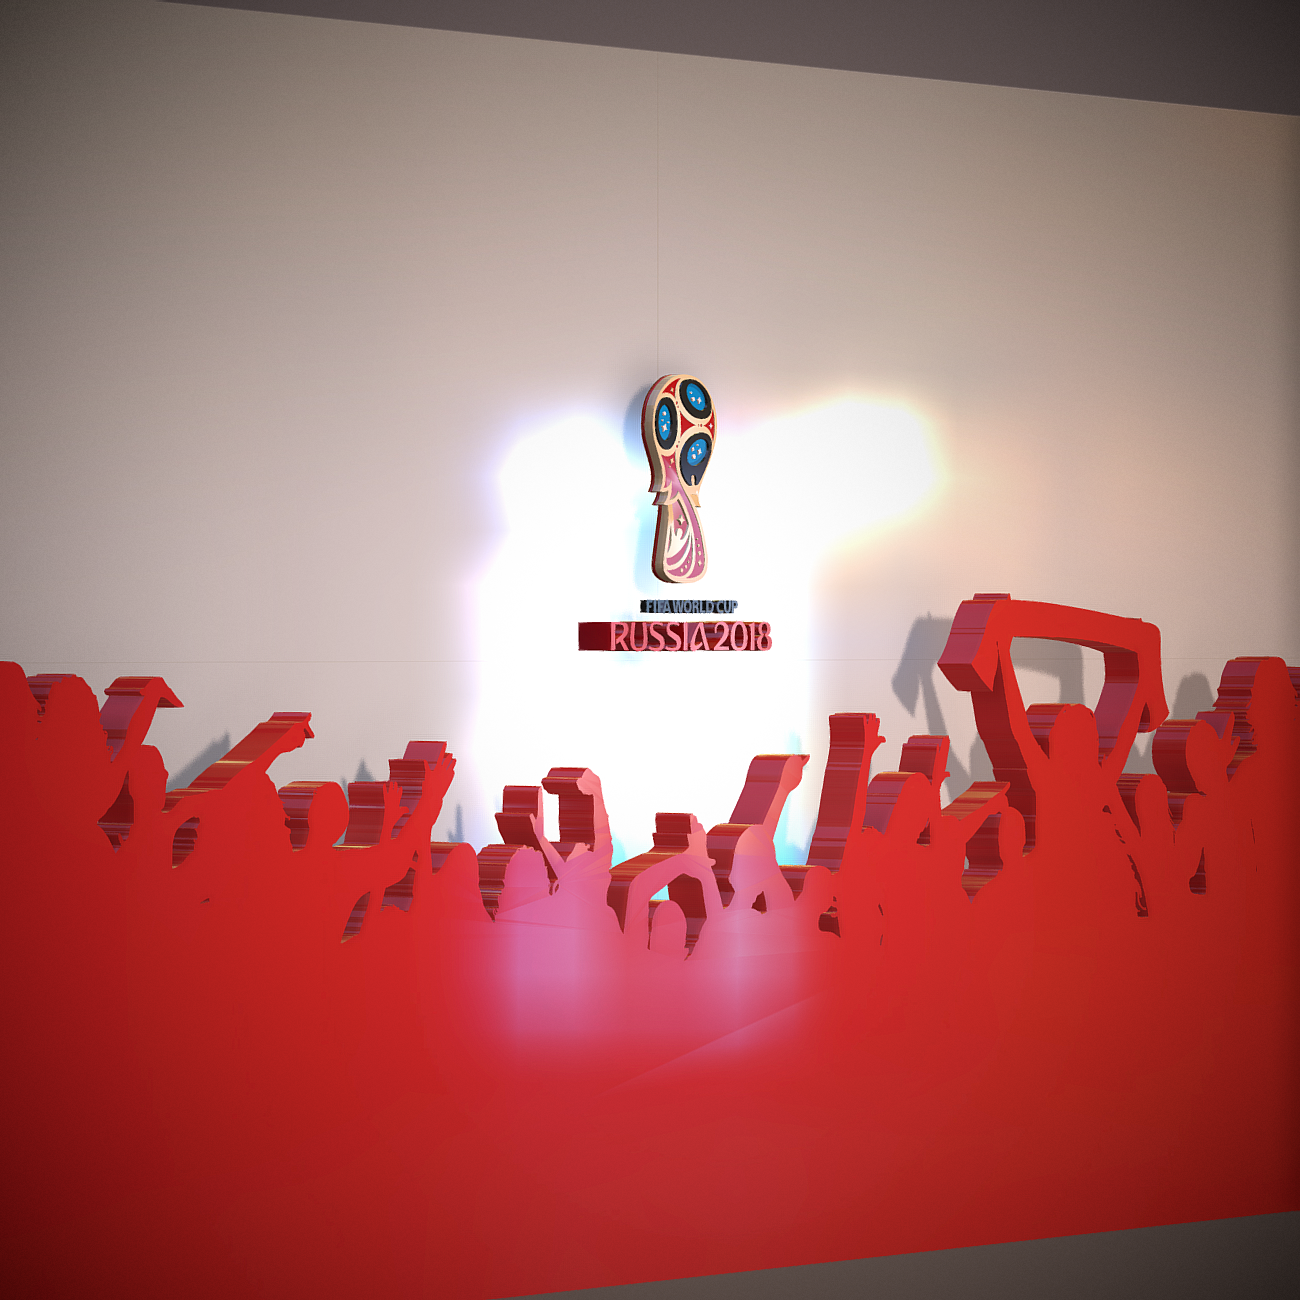 fifa world cup russia 2018 style 3d model 3ds max fbx jpeg jpg ma mb obj 269754